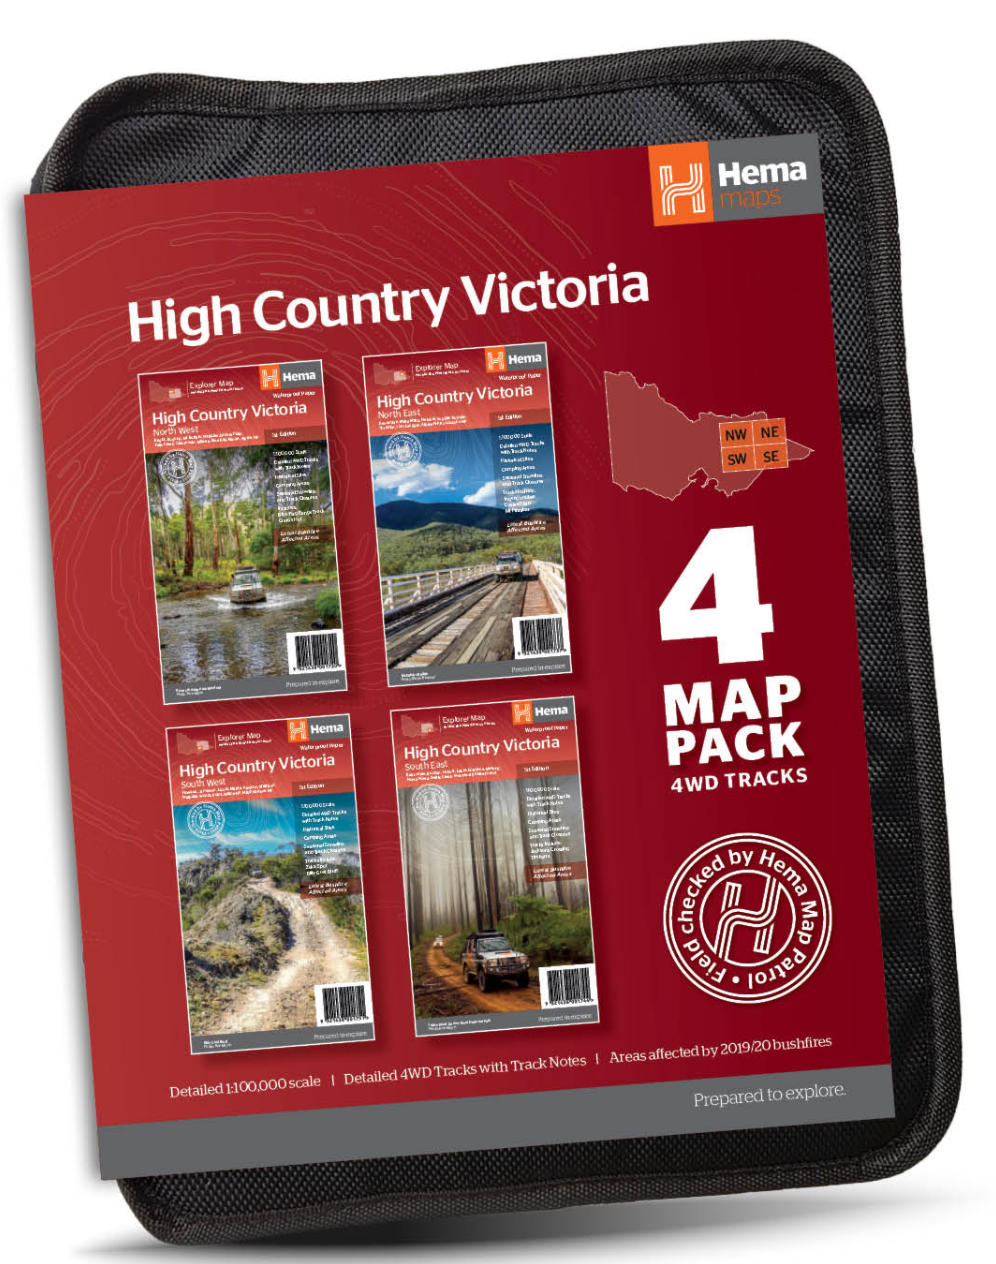 Hema Maps Launch New Victorian High Country Map Pack